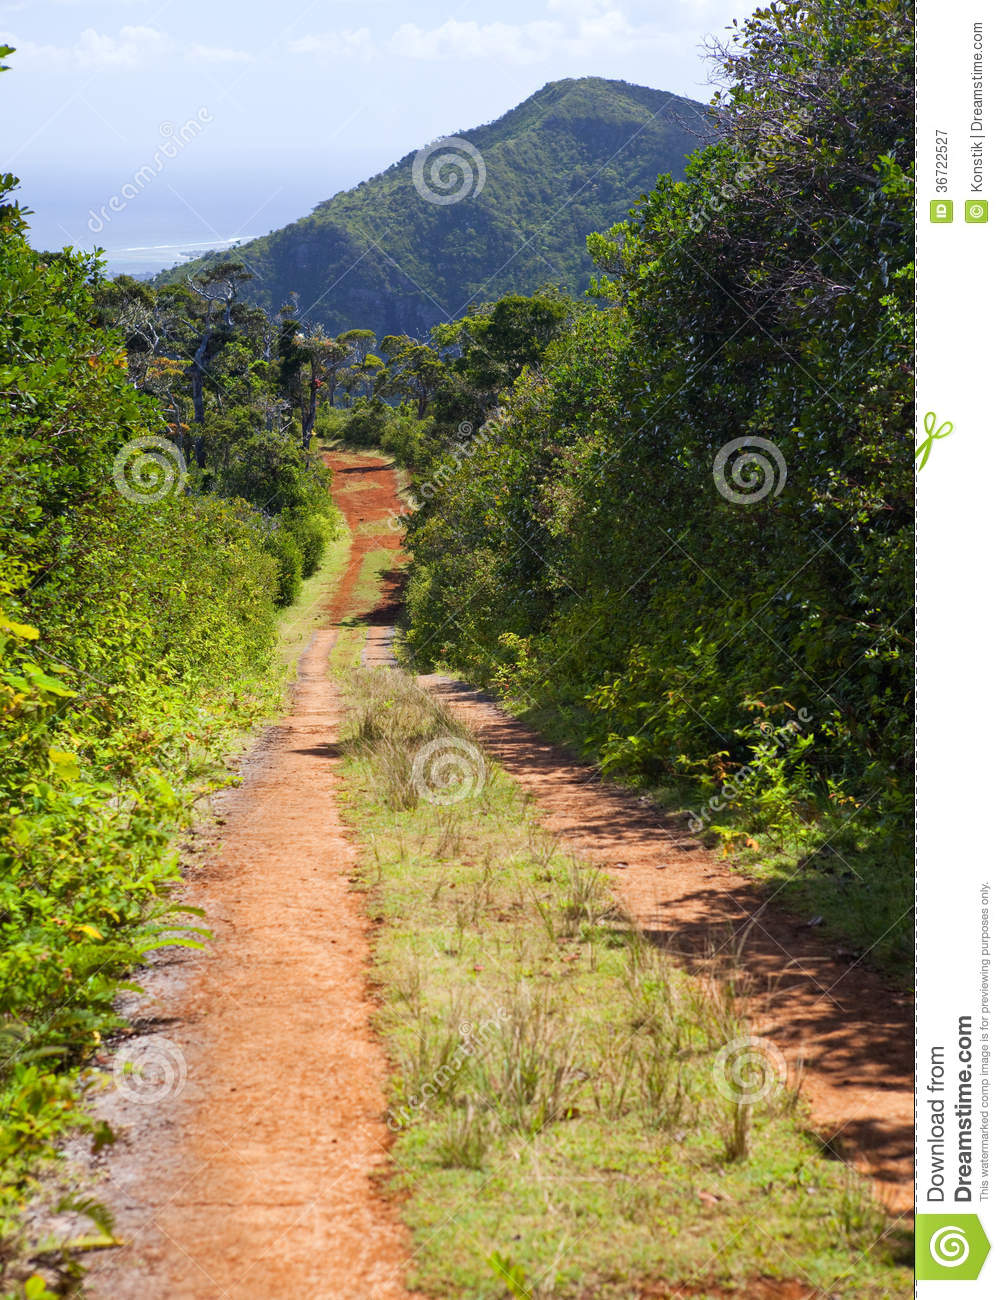 The Road In The Wood, Mauritius.Landscape In A Sunny Day